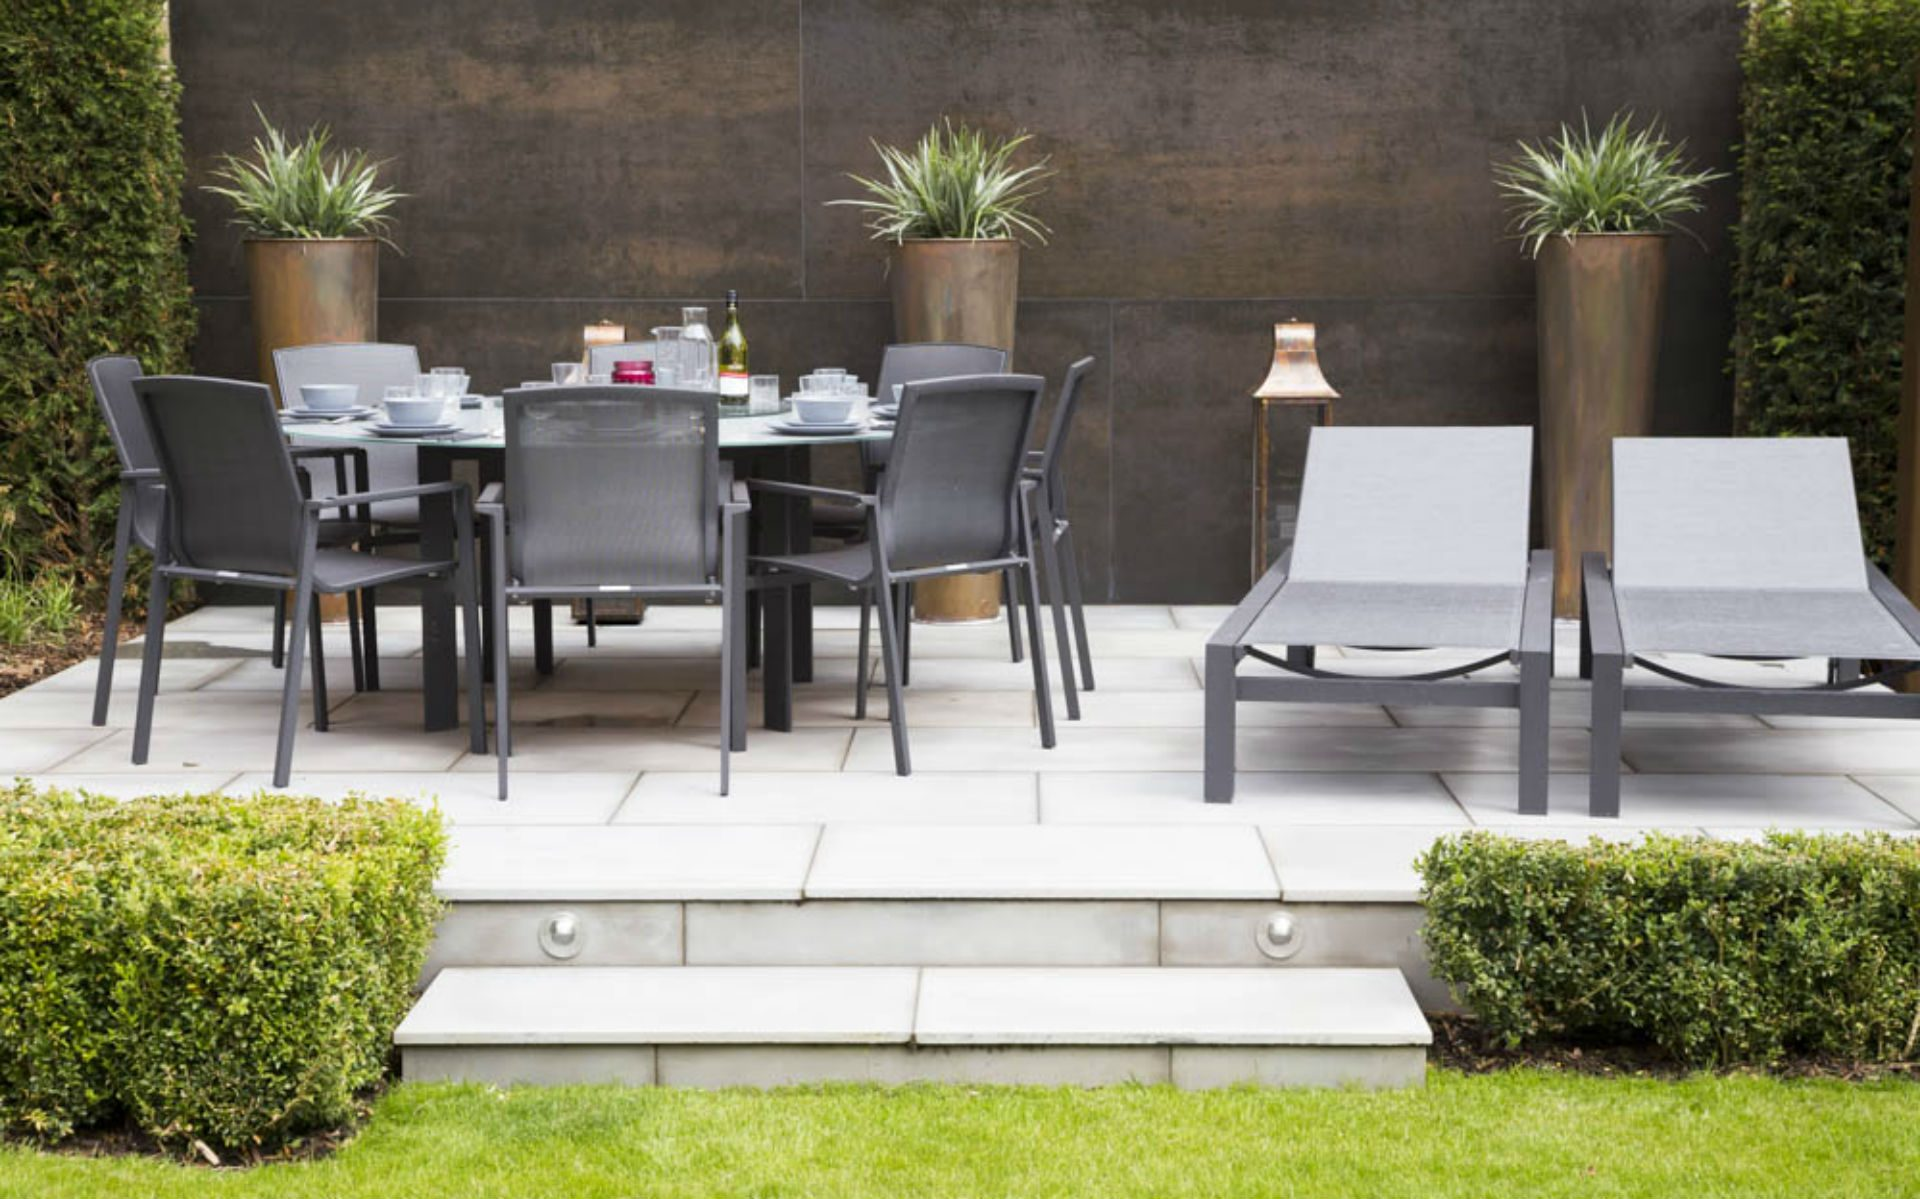 Portfolio BALI Award Winning Small Urban Garden Beaulieu Chelmsford Essex Dining and Sunlounge Area